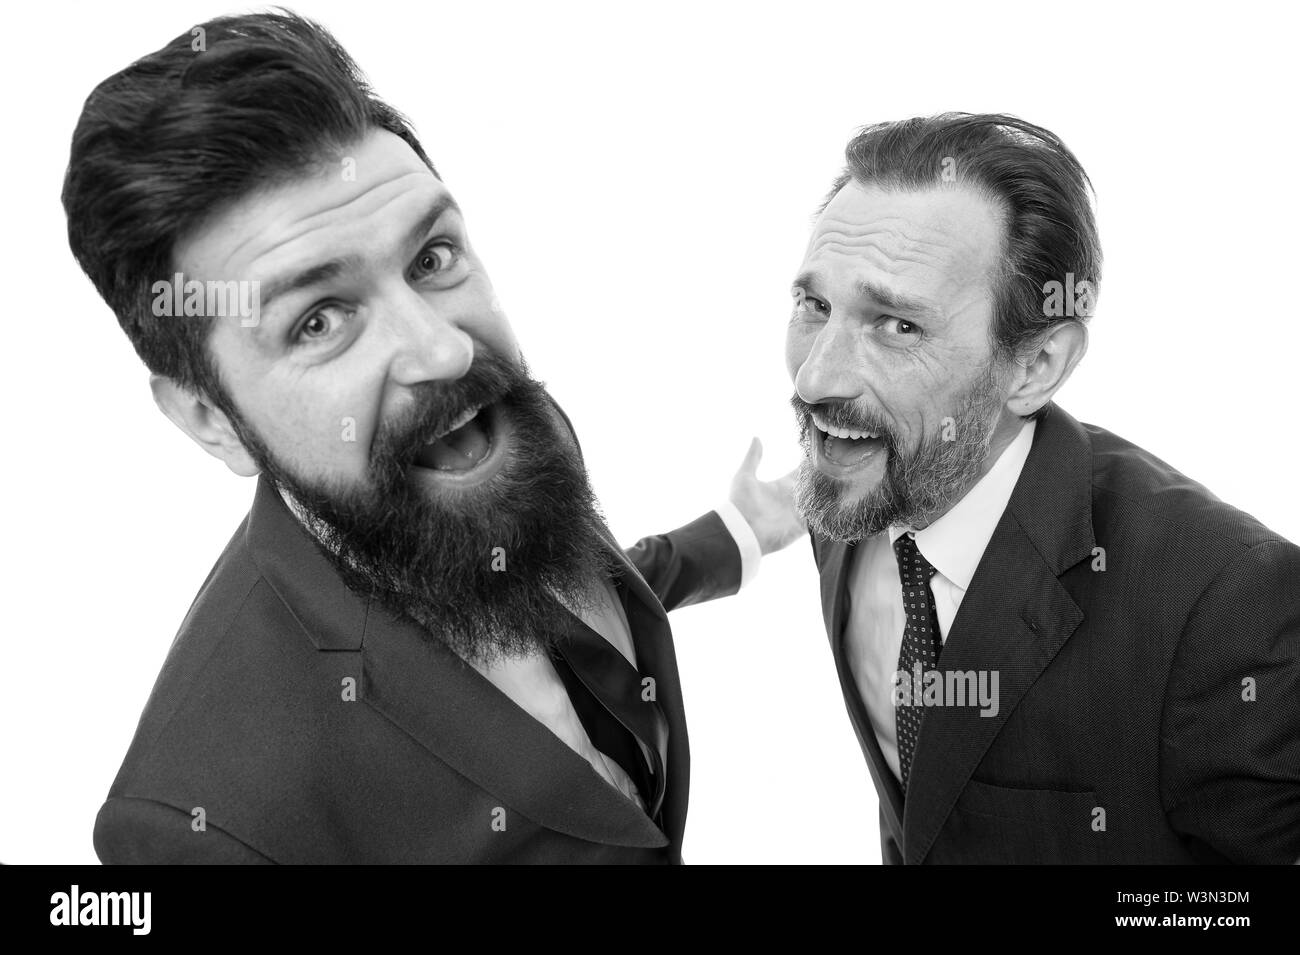 Are you kidding me. Partnership and teamwork. Men successful entrepreneurs white background. Business team. Business people concept. Men bearded wear formal suits. Well groomed business men laughing. - Stock Image